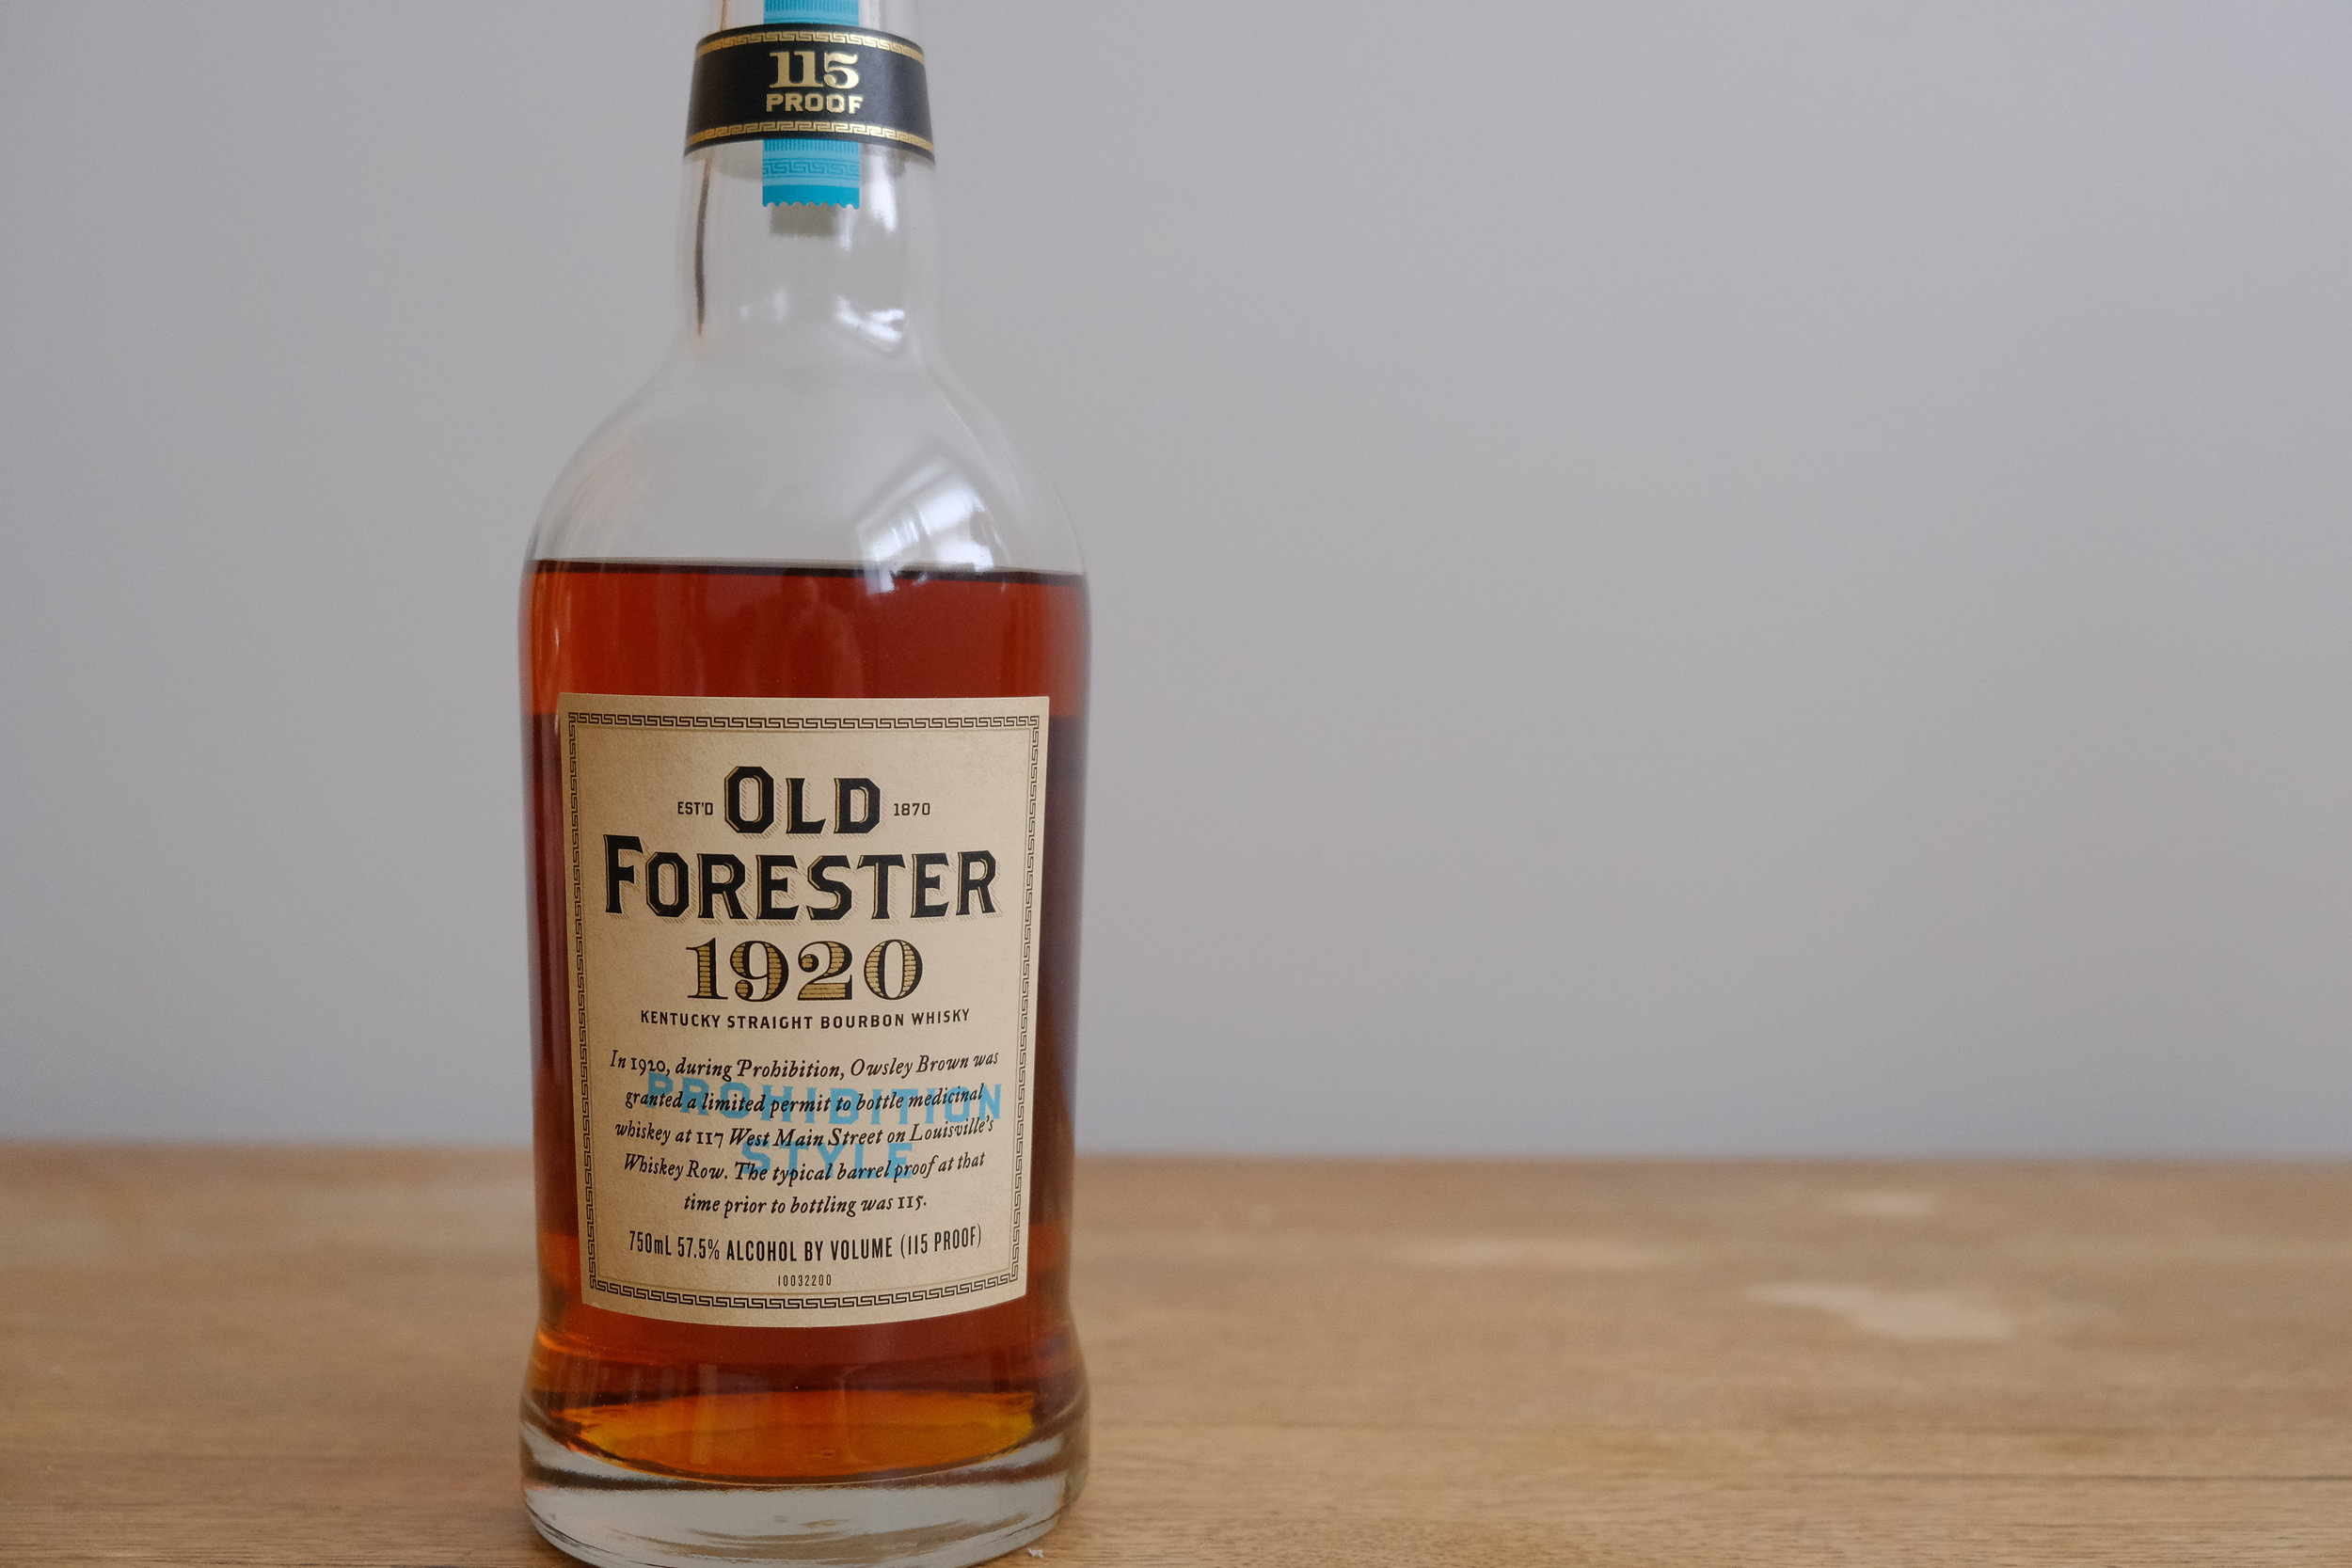 4. Old Forester 1920 Prohibition - When only 10 distilleries remained open during prohibition, Old Forester was still producing some stellar whiskey. With their 'Whiskey Row' series, you don't even need a Delorean to get a taste of it. We're glad they brought this recipe back.